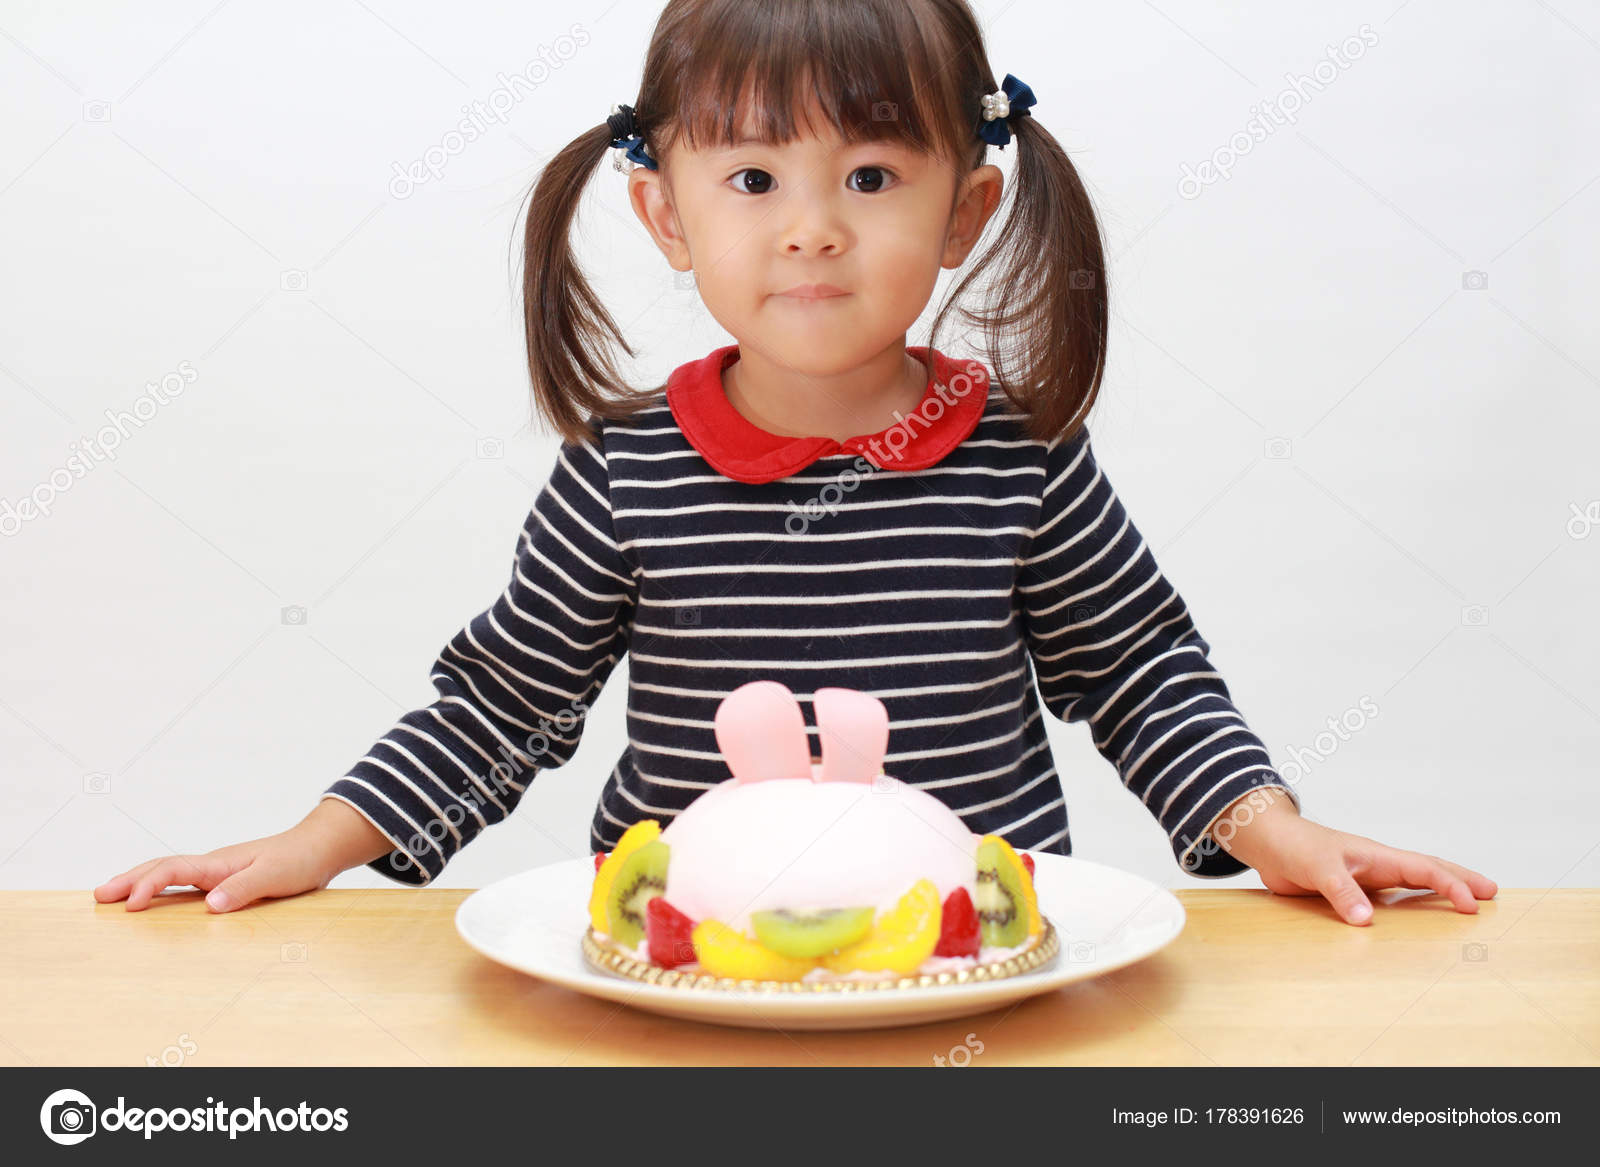 Japanese Girl And A Birthday Cake 3 Years Old Stockfoto